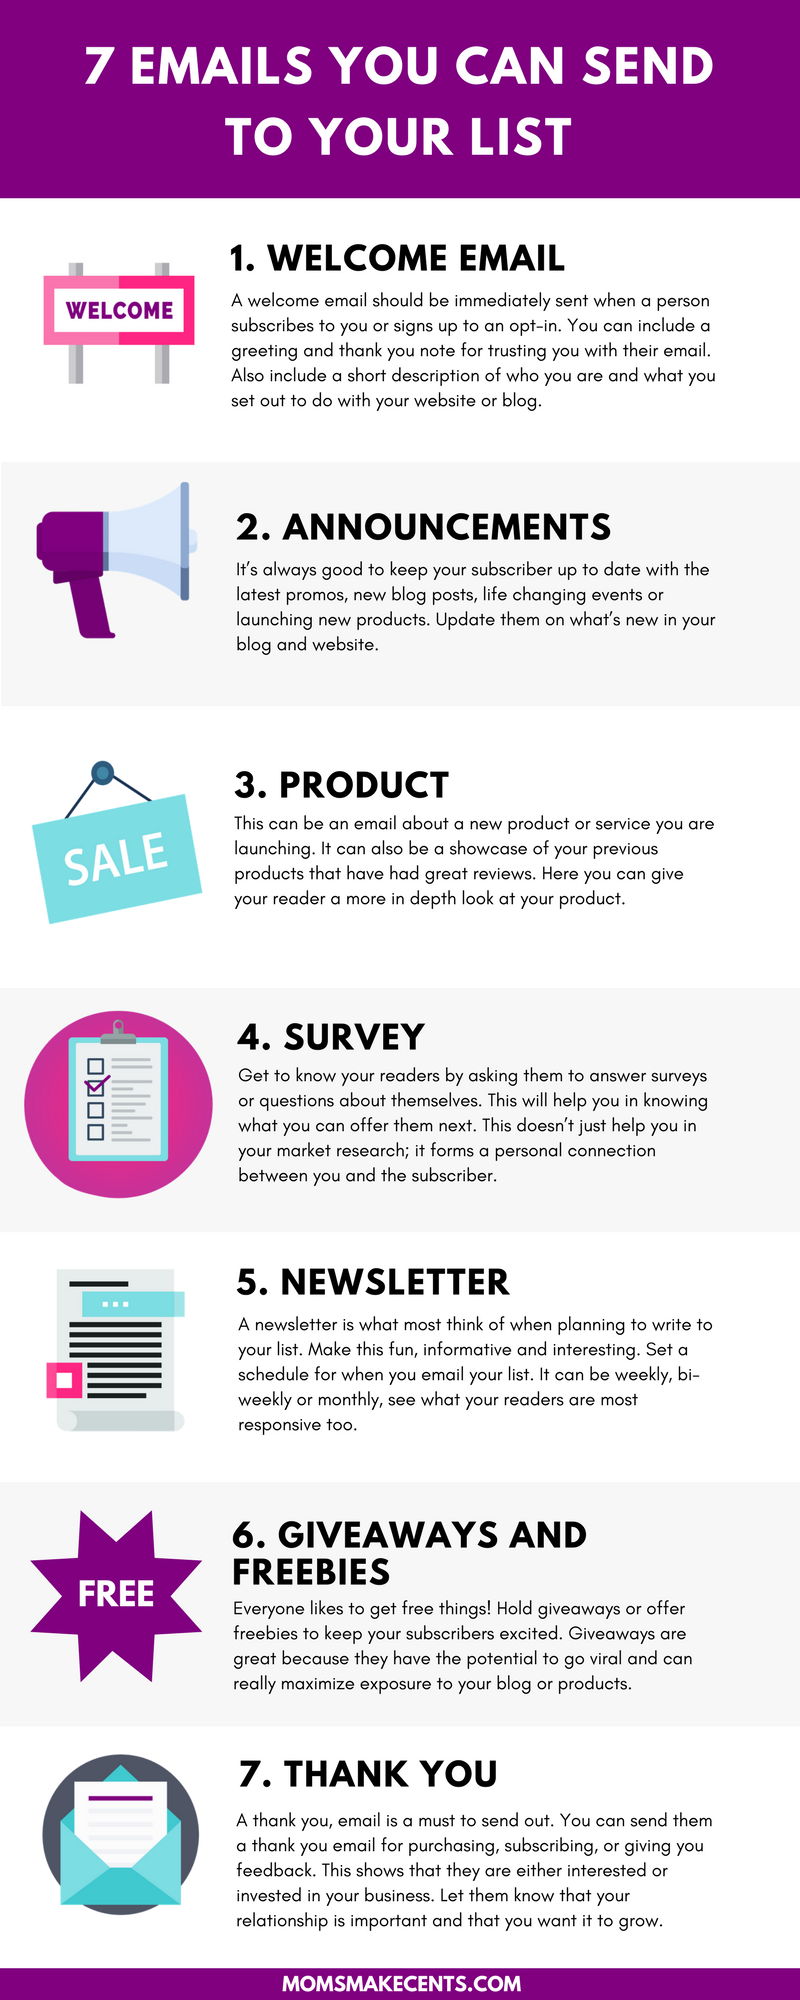 5 Types Of Marketing Strategies Proven To Work Online